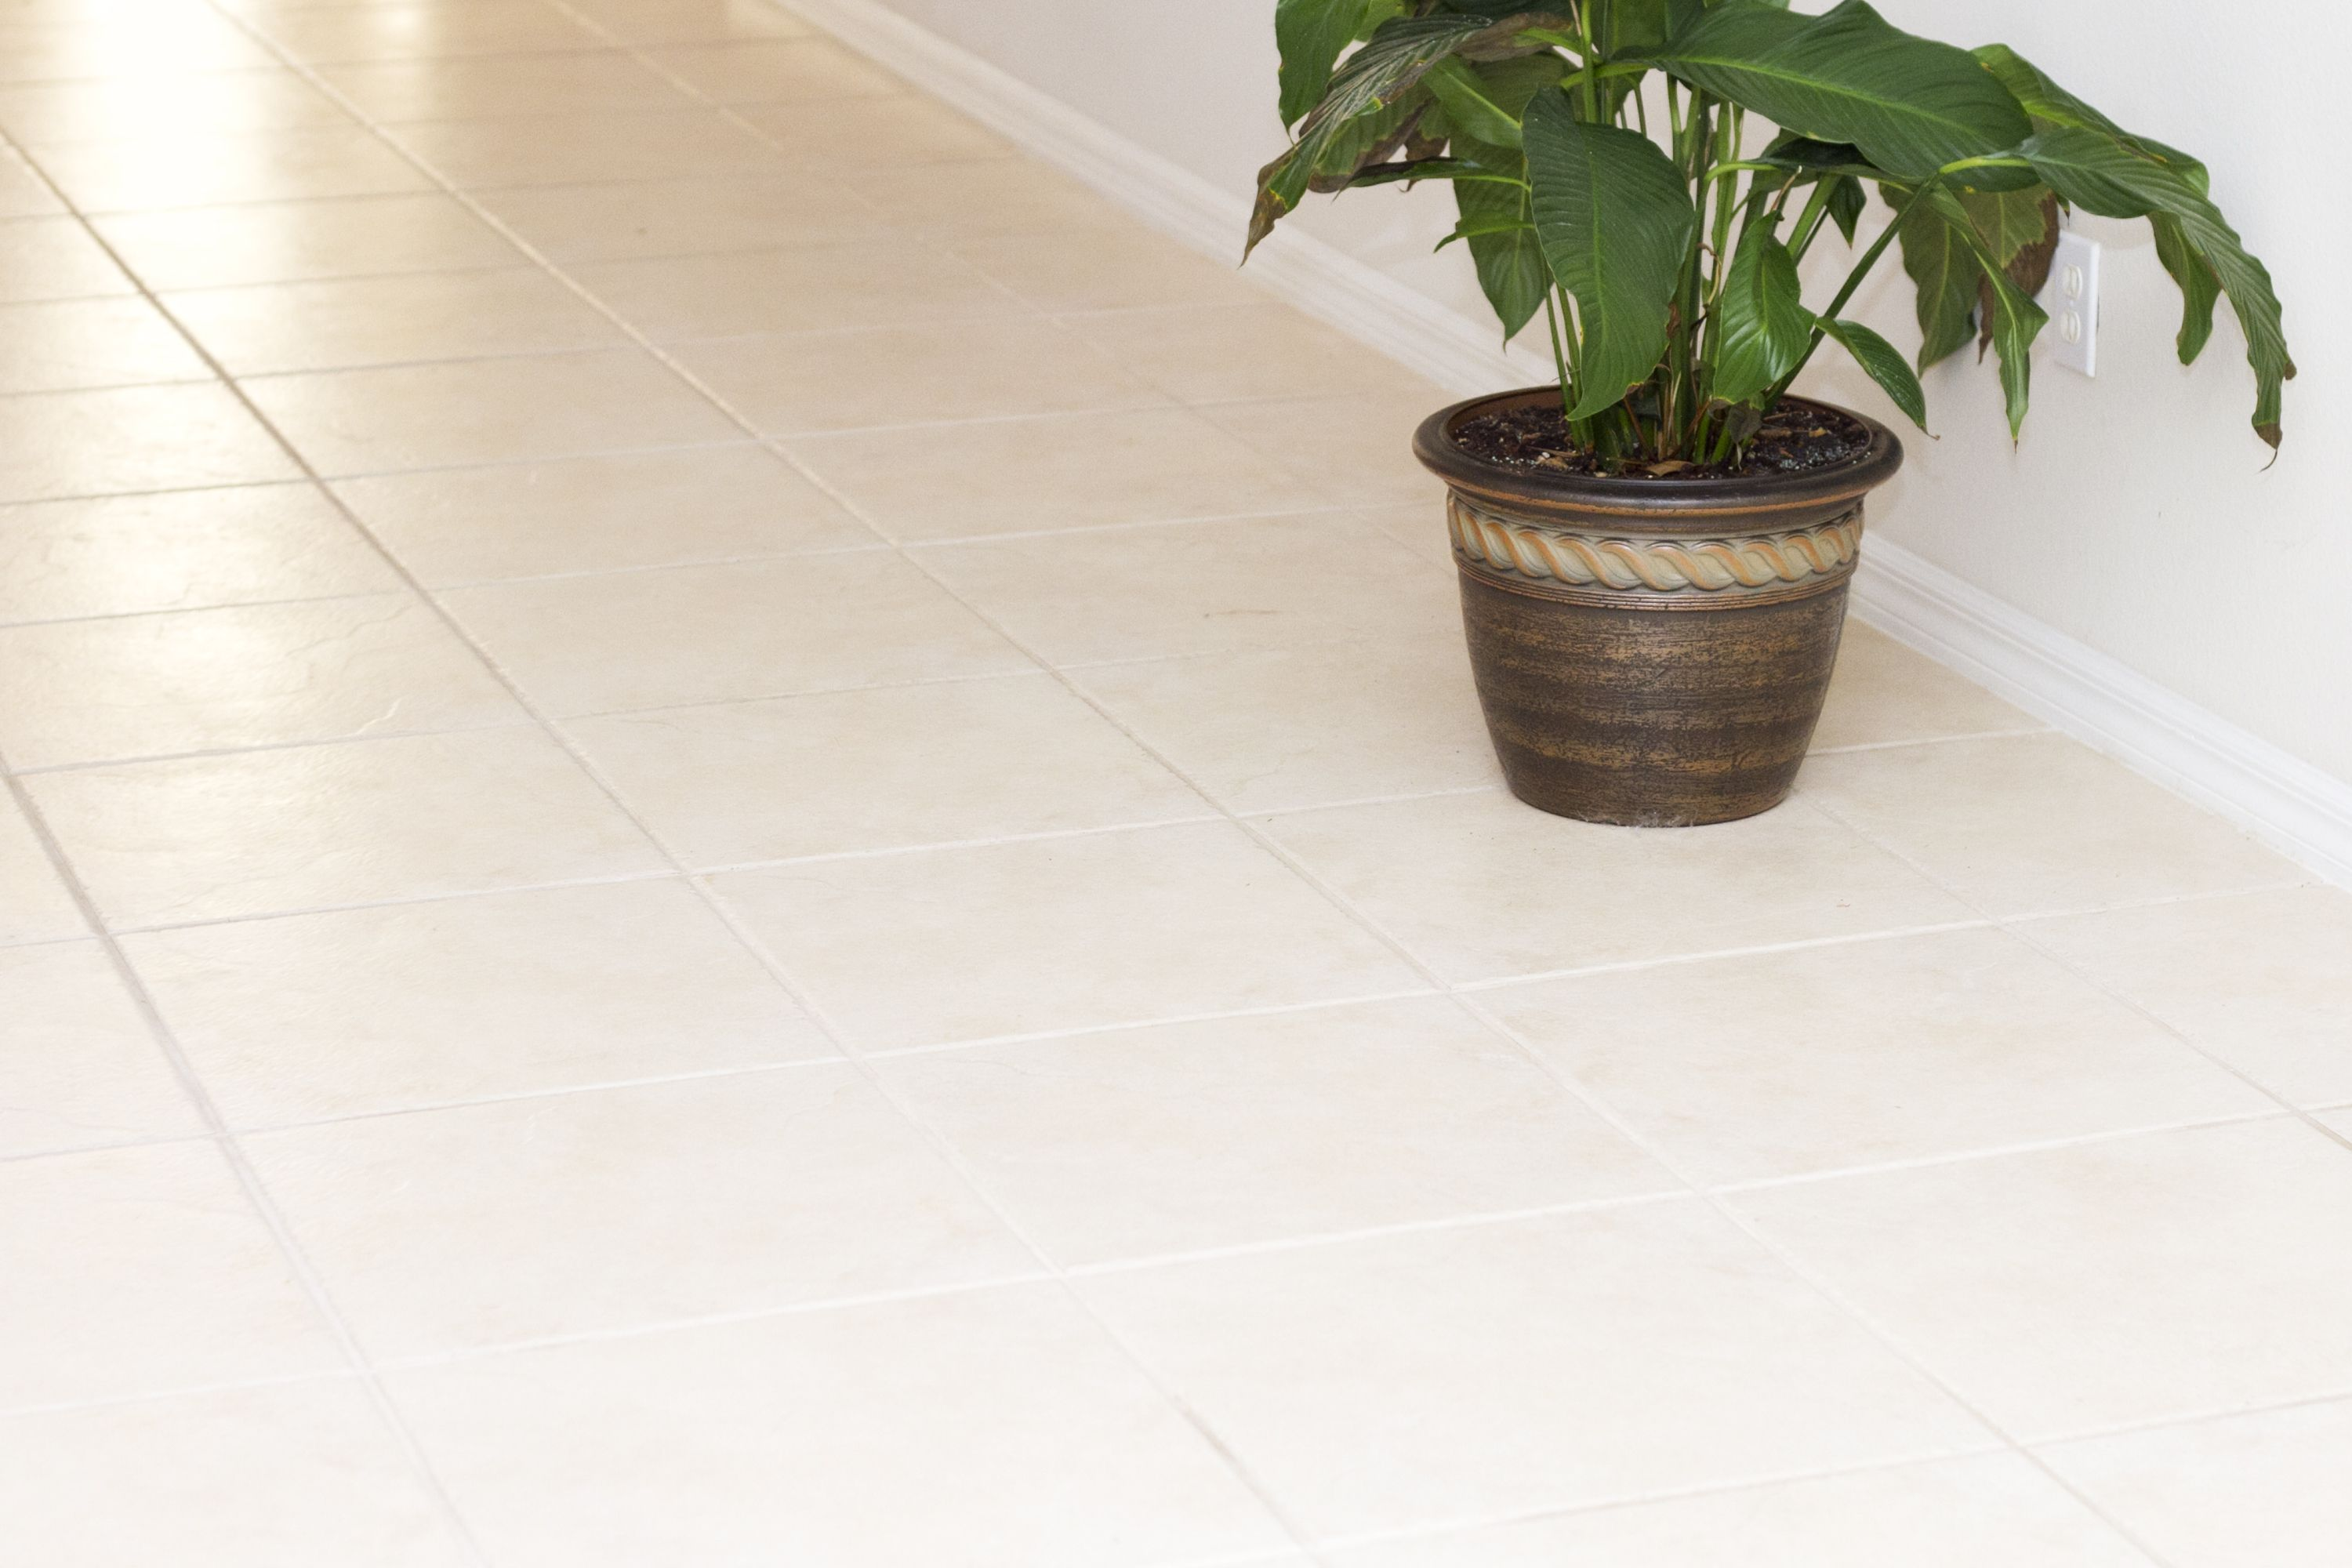 How to Use Vinegar for Cleaning Porcelain or Tile Floors | Pinterest ...